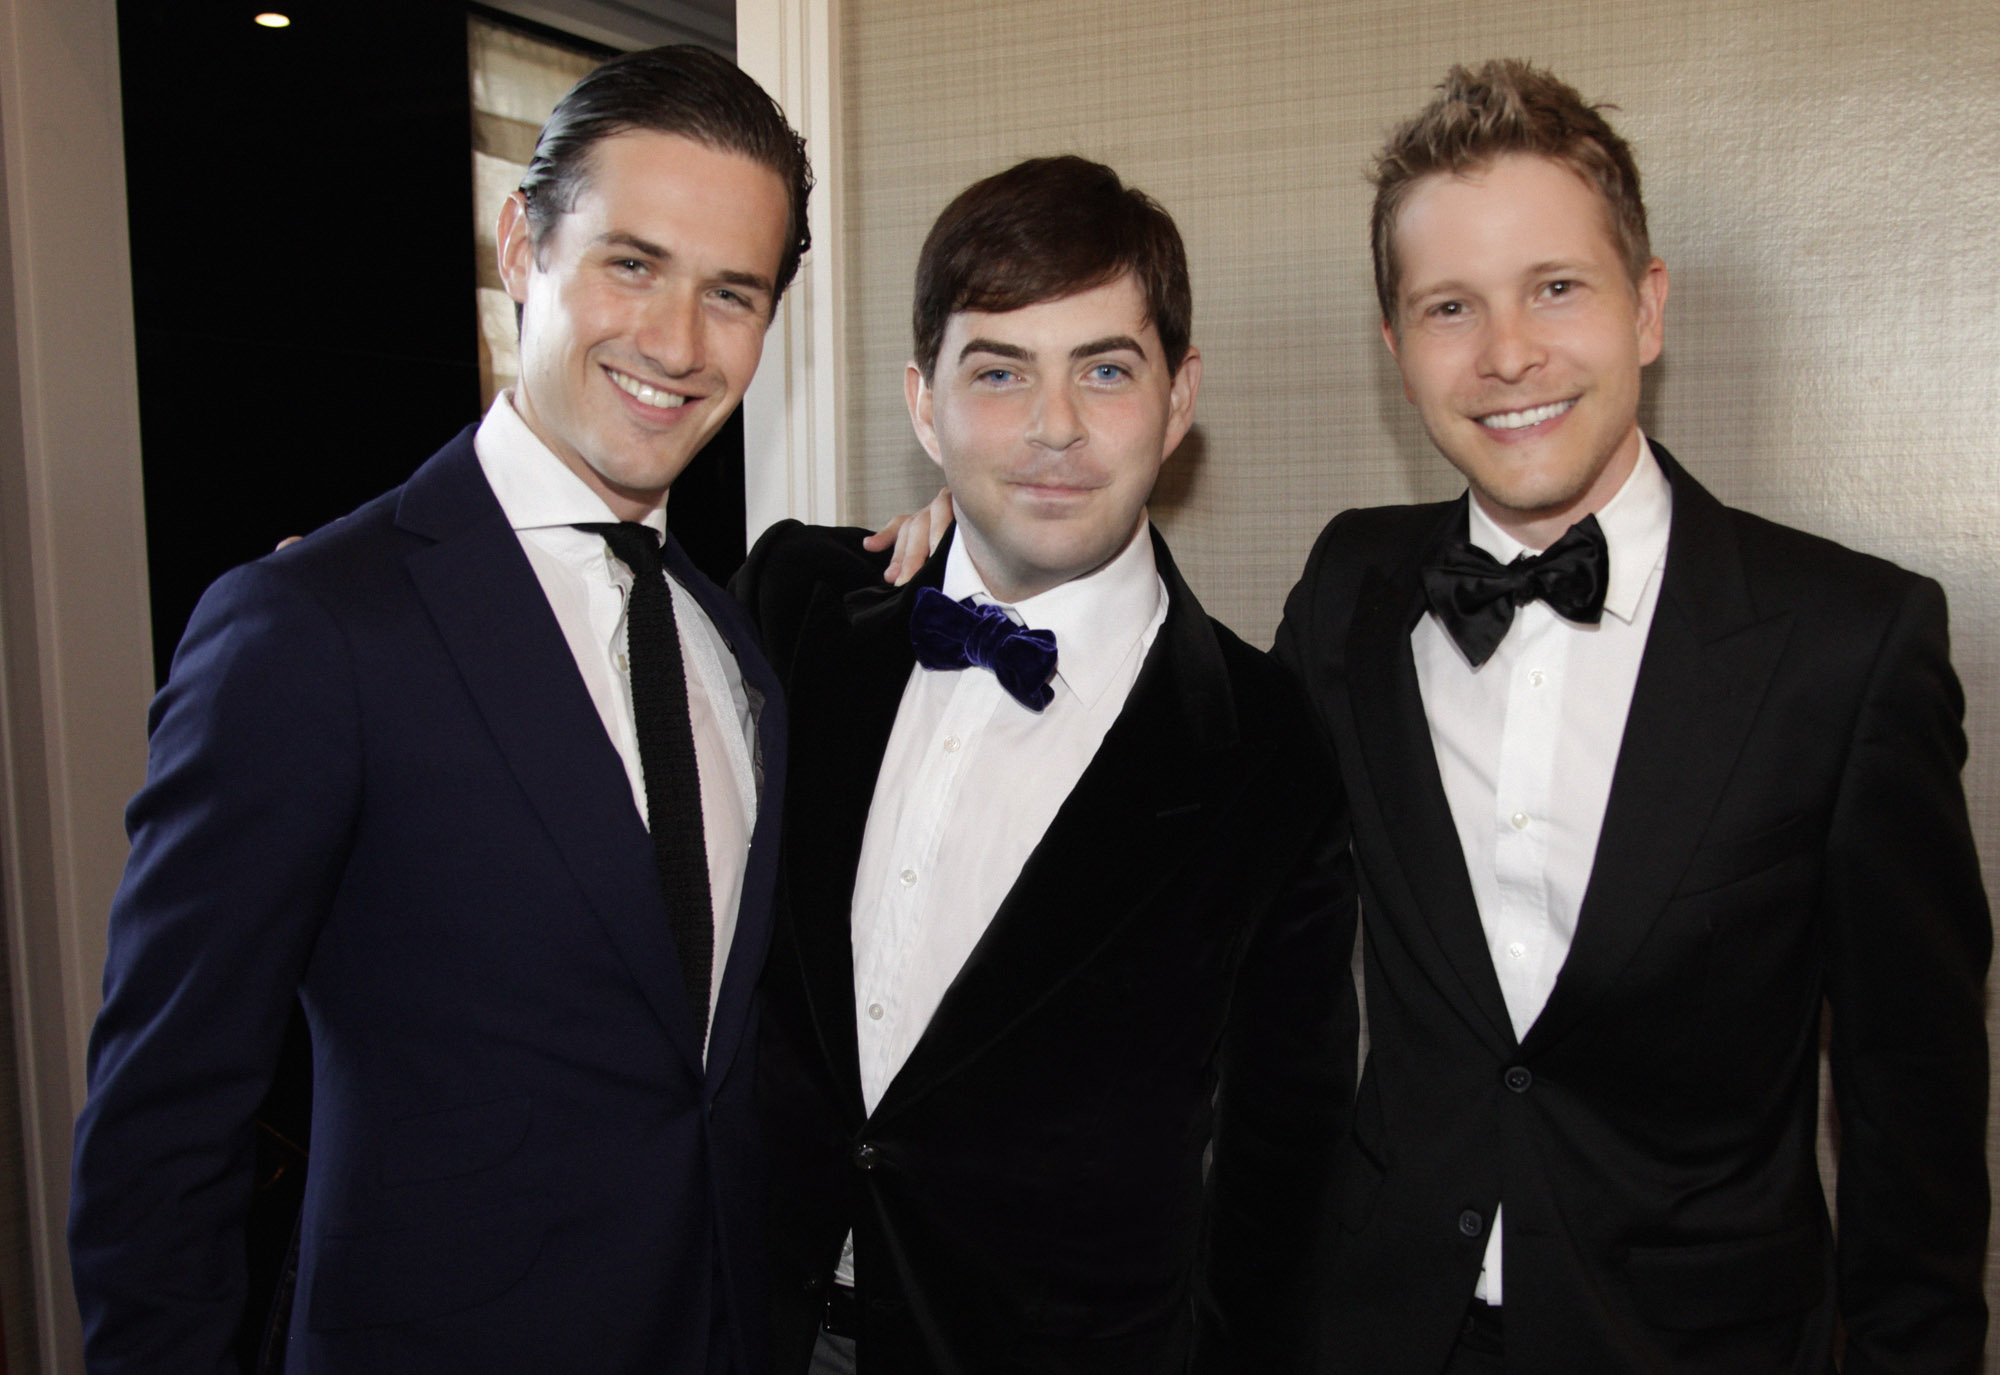 Violin virtuoso Charlie Siem with 360bespoke founder Jeremy Murphy and actor Matt Czuchry at The Carlyle.